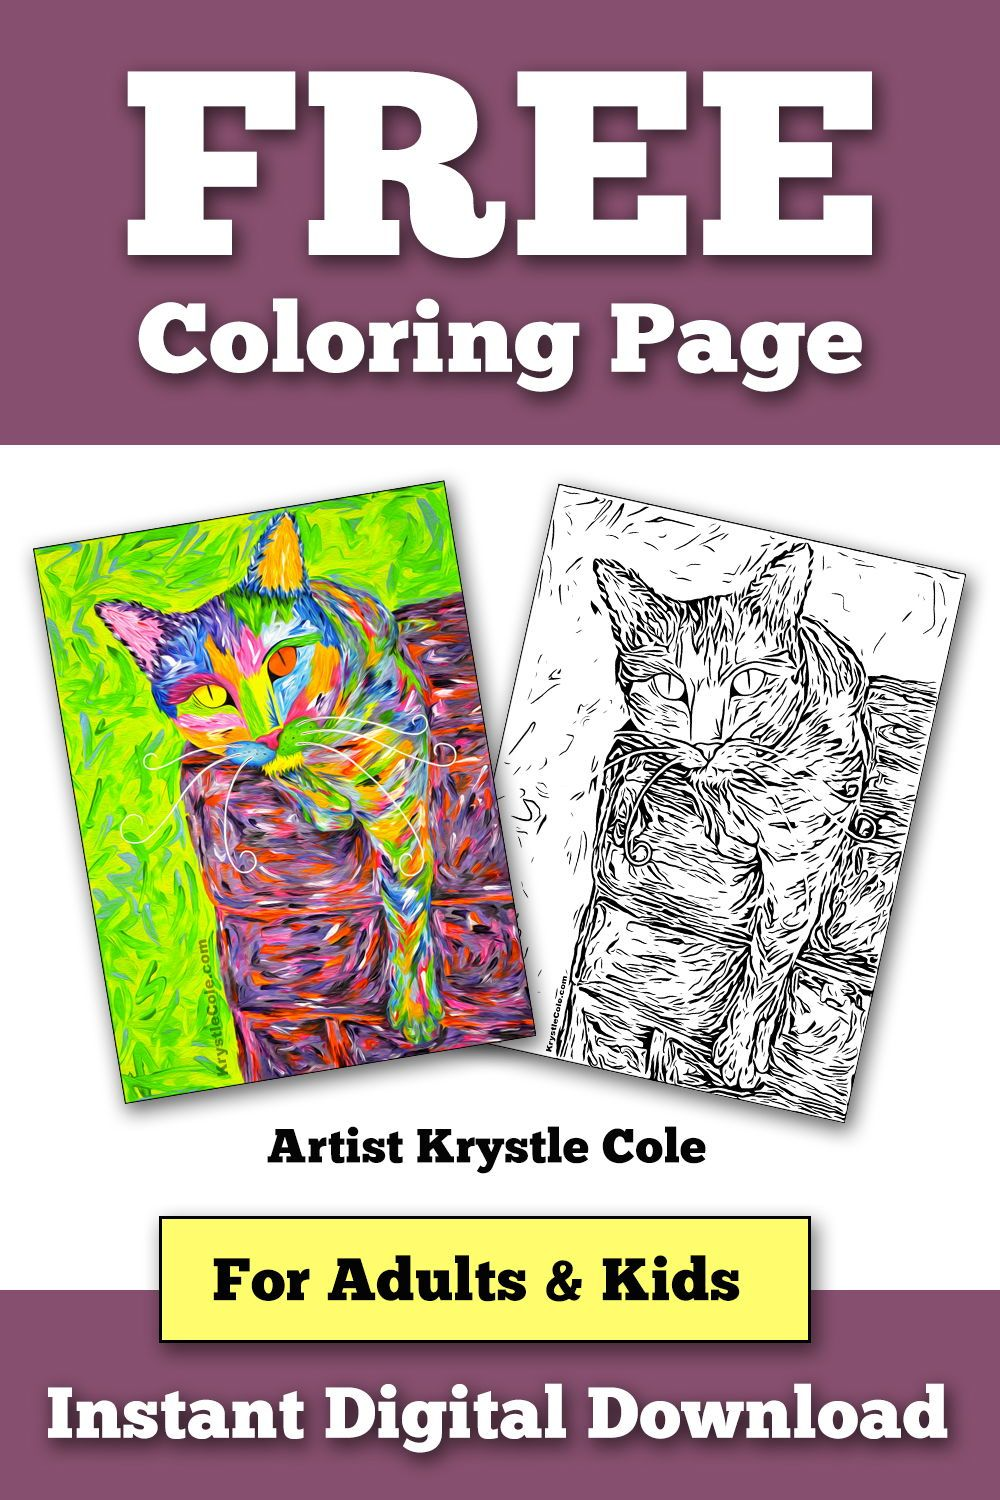 Free Coloring Book Page Coloring Pages Coloring Book Pages Free Coloring Pages